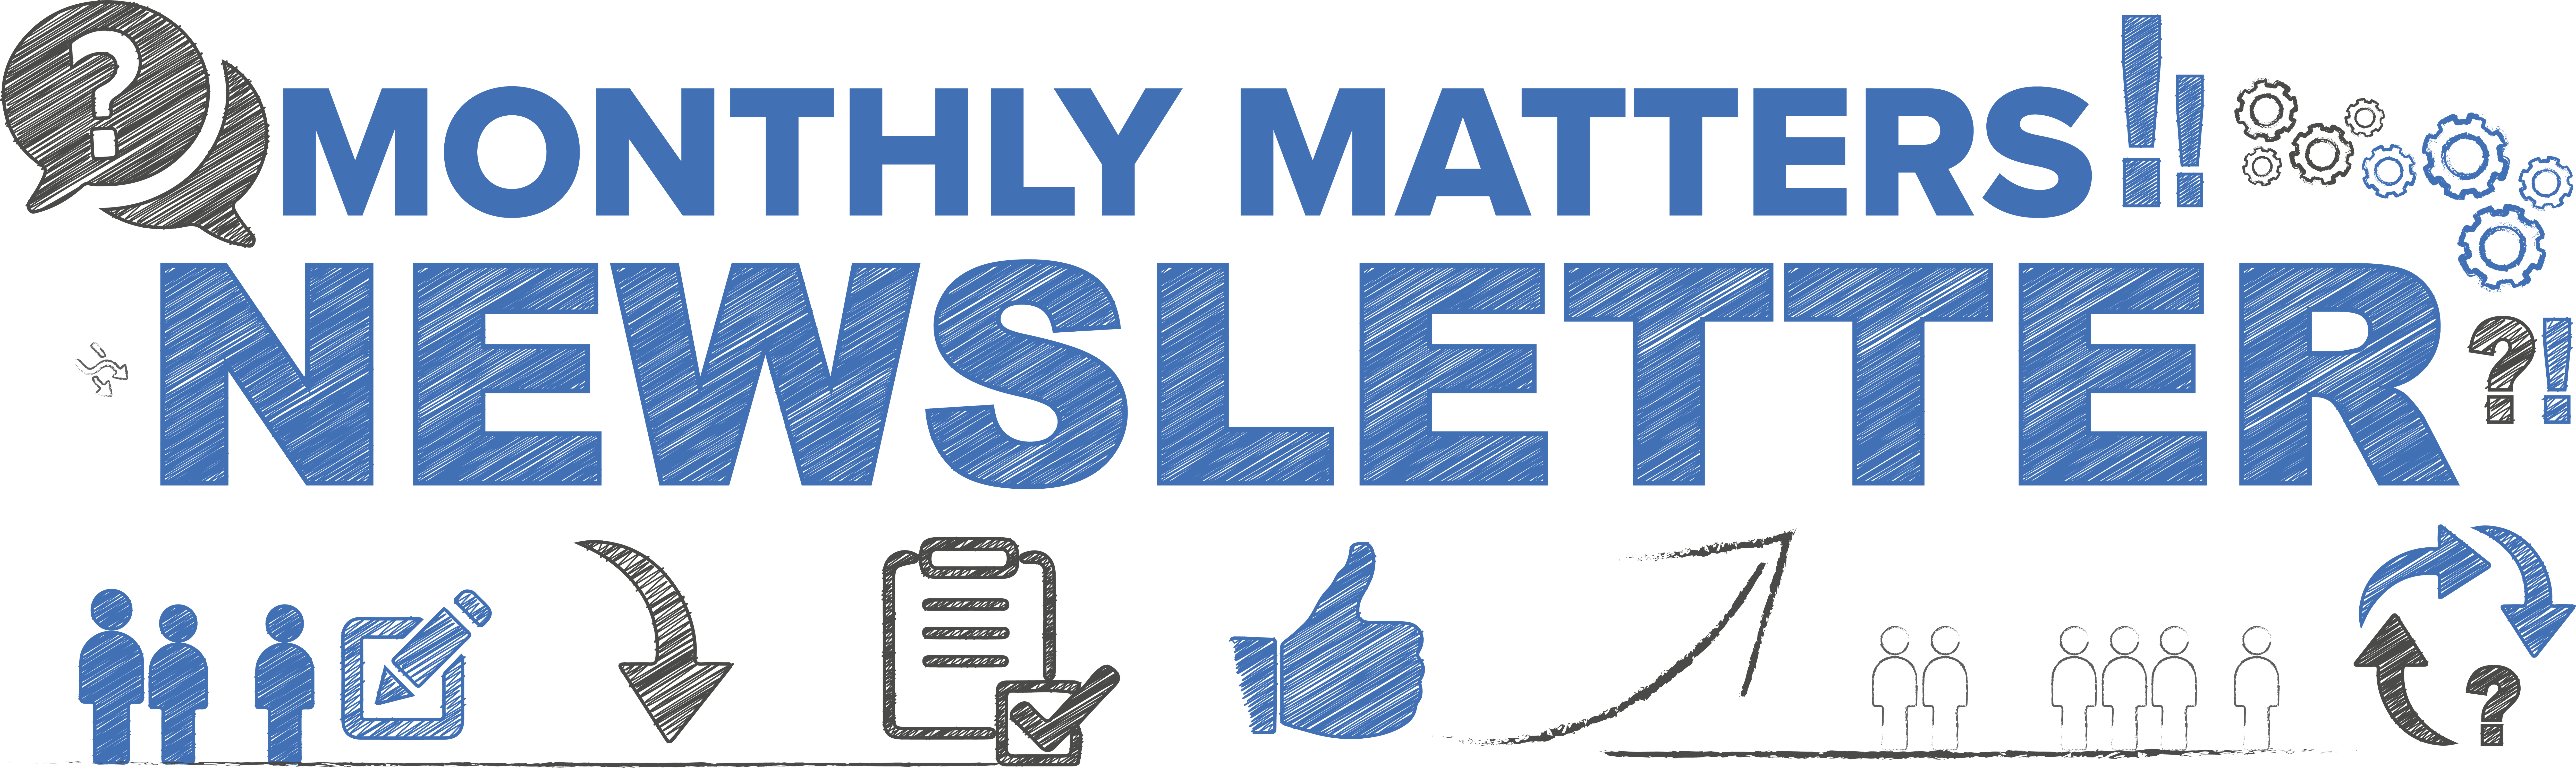 March 2021 Monthly Matters